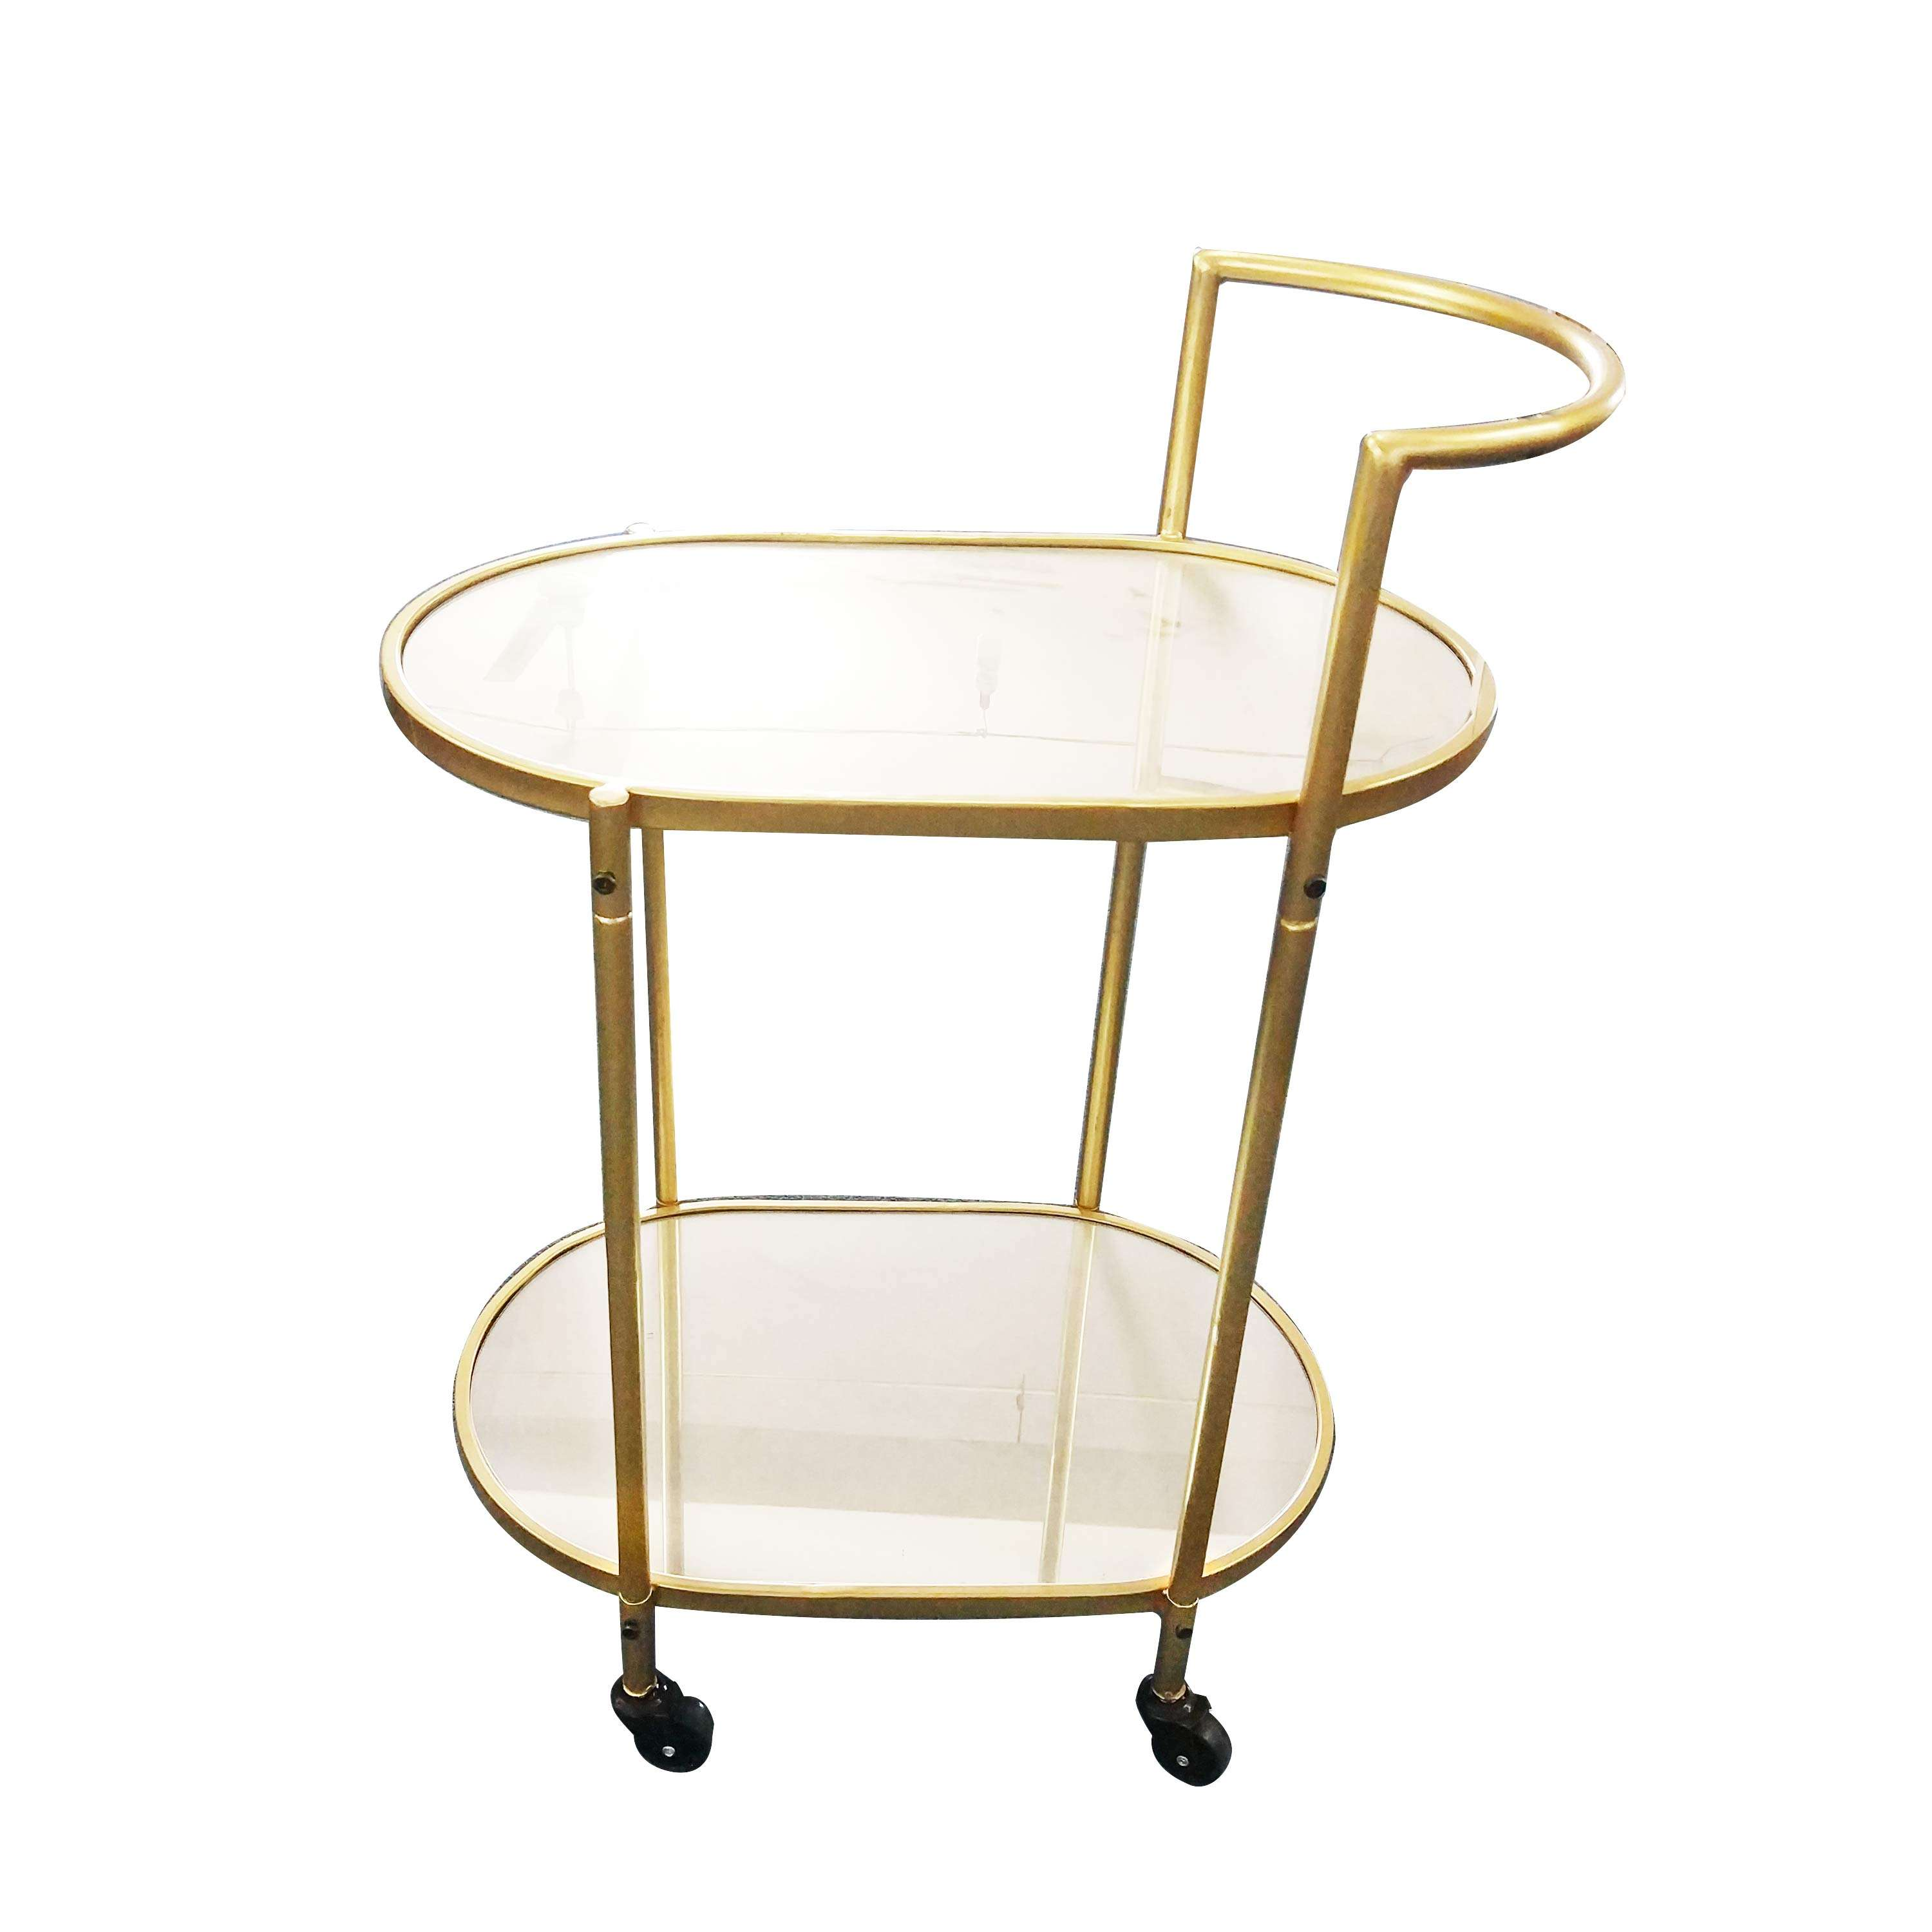 Luxurious Elegant Mirrored Top And Metal Gold Bar Cart/Serving Tea Trolley Cart With Lockable Casters